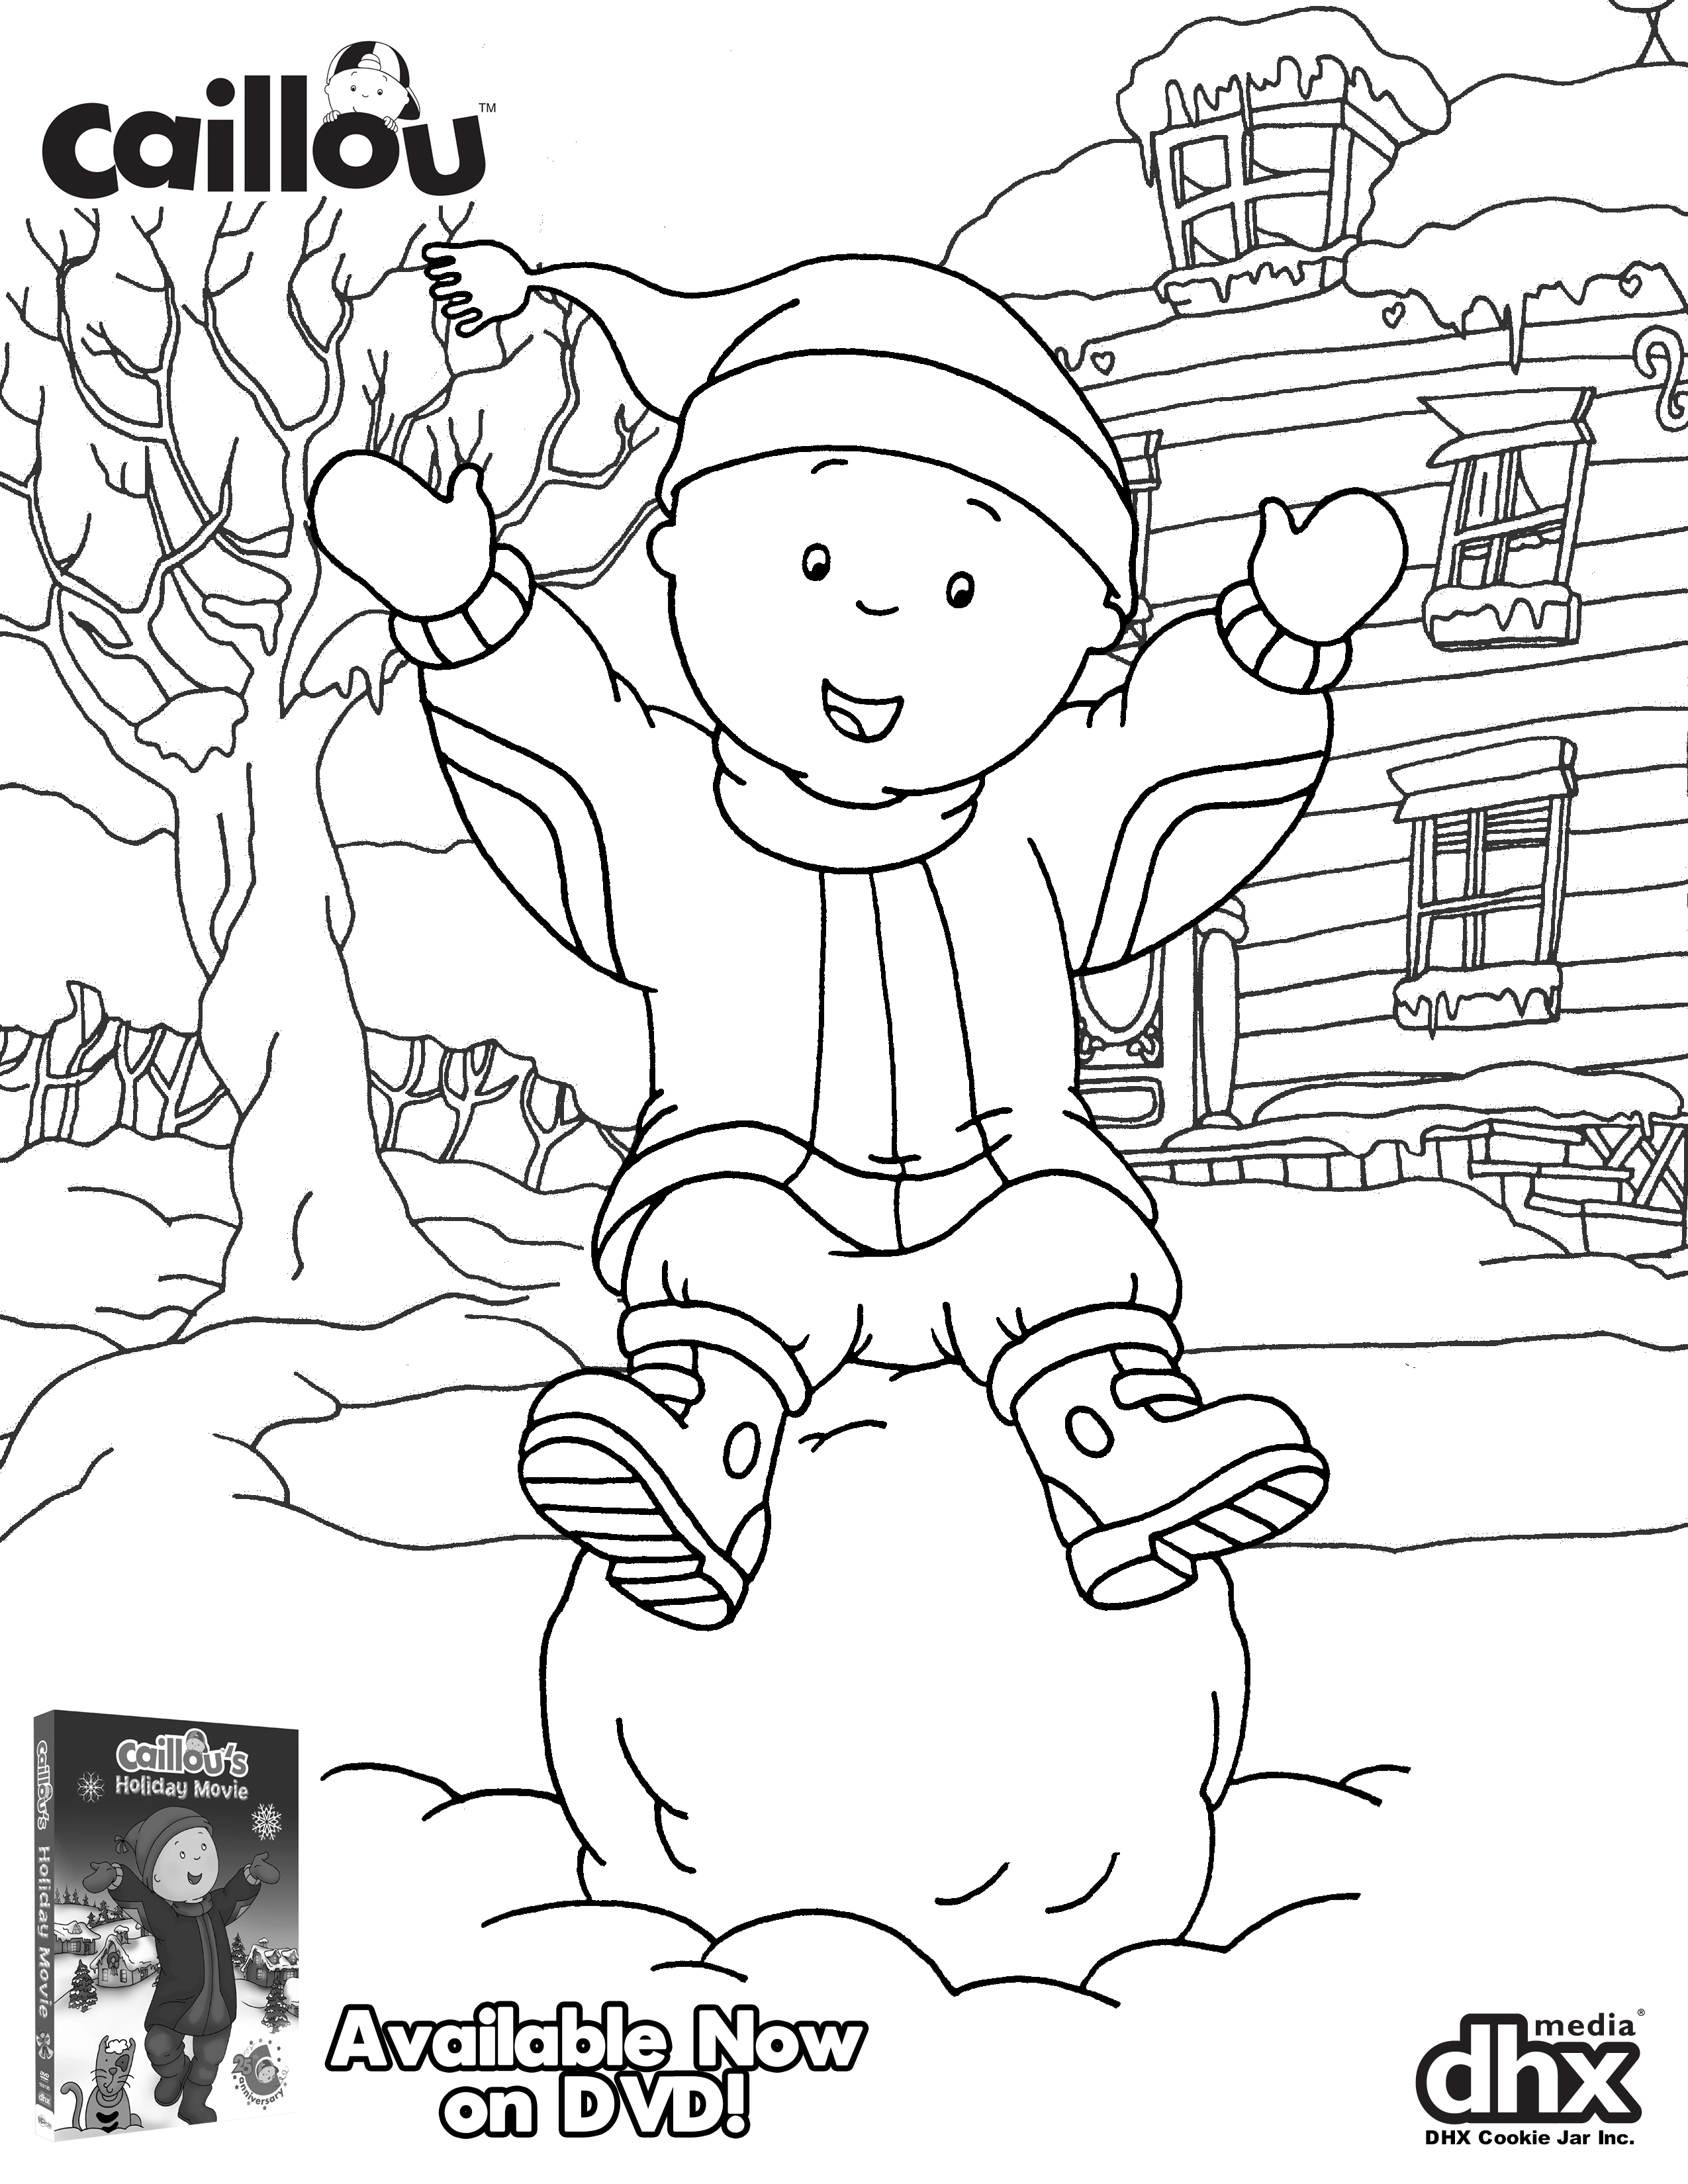 We Re Celebrating The Holidays Early With This Adorable Coloring Sheet And Caillou S Holiday Movie Dvd Now Available Holiday Movie Caillou Coloring For Kids